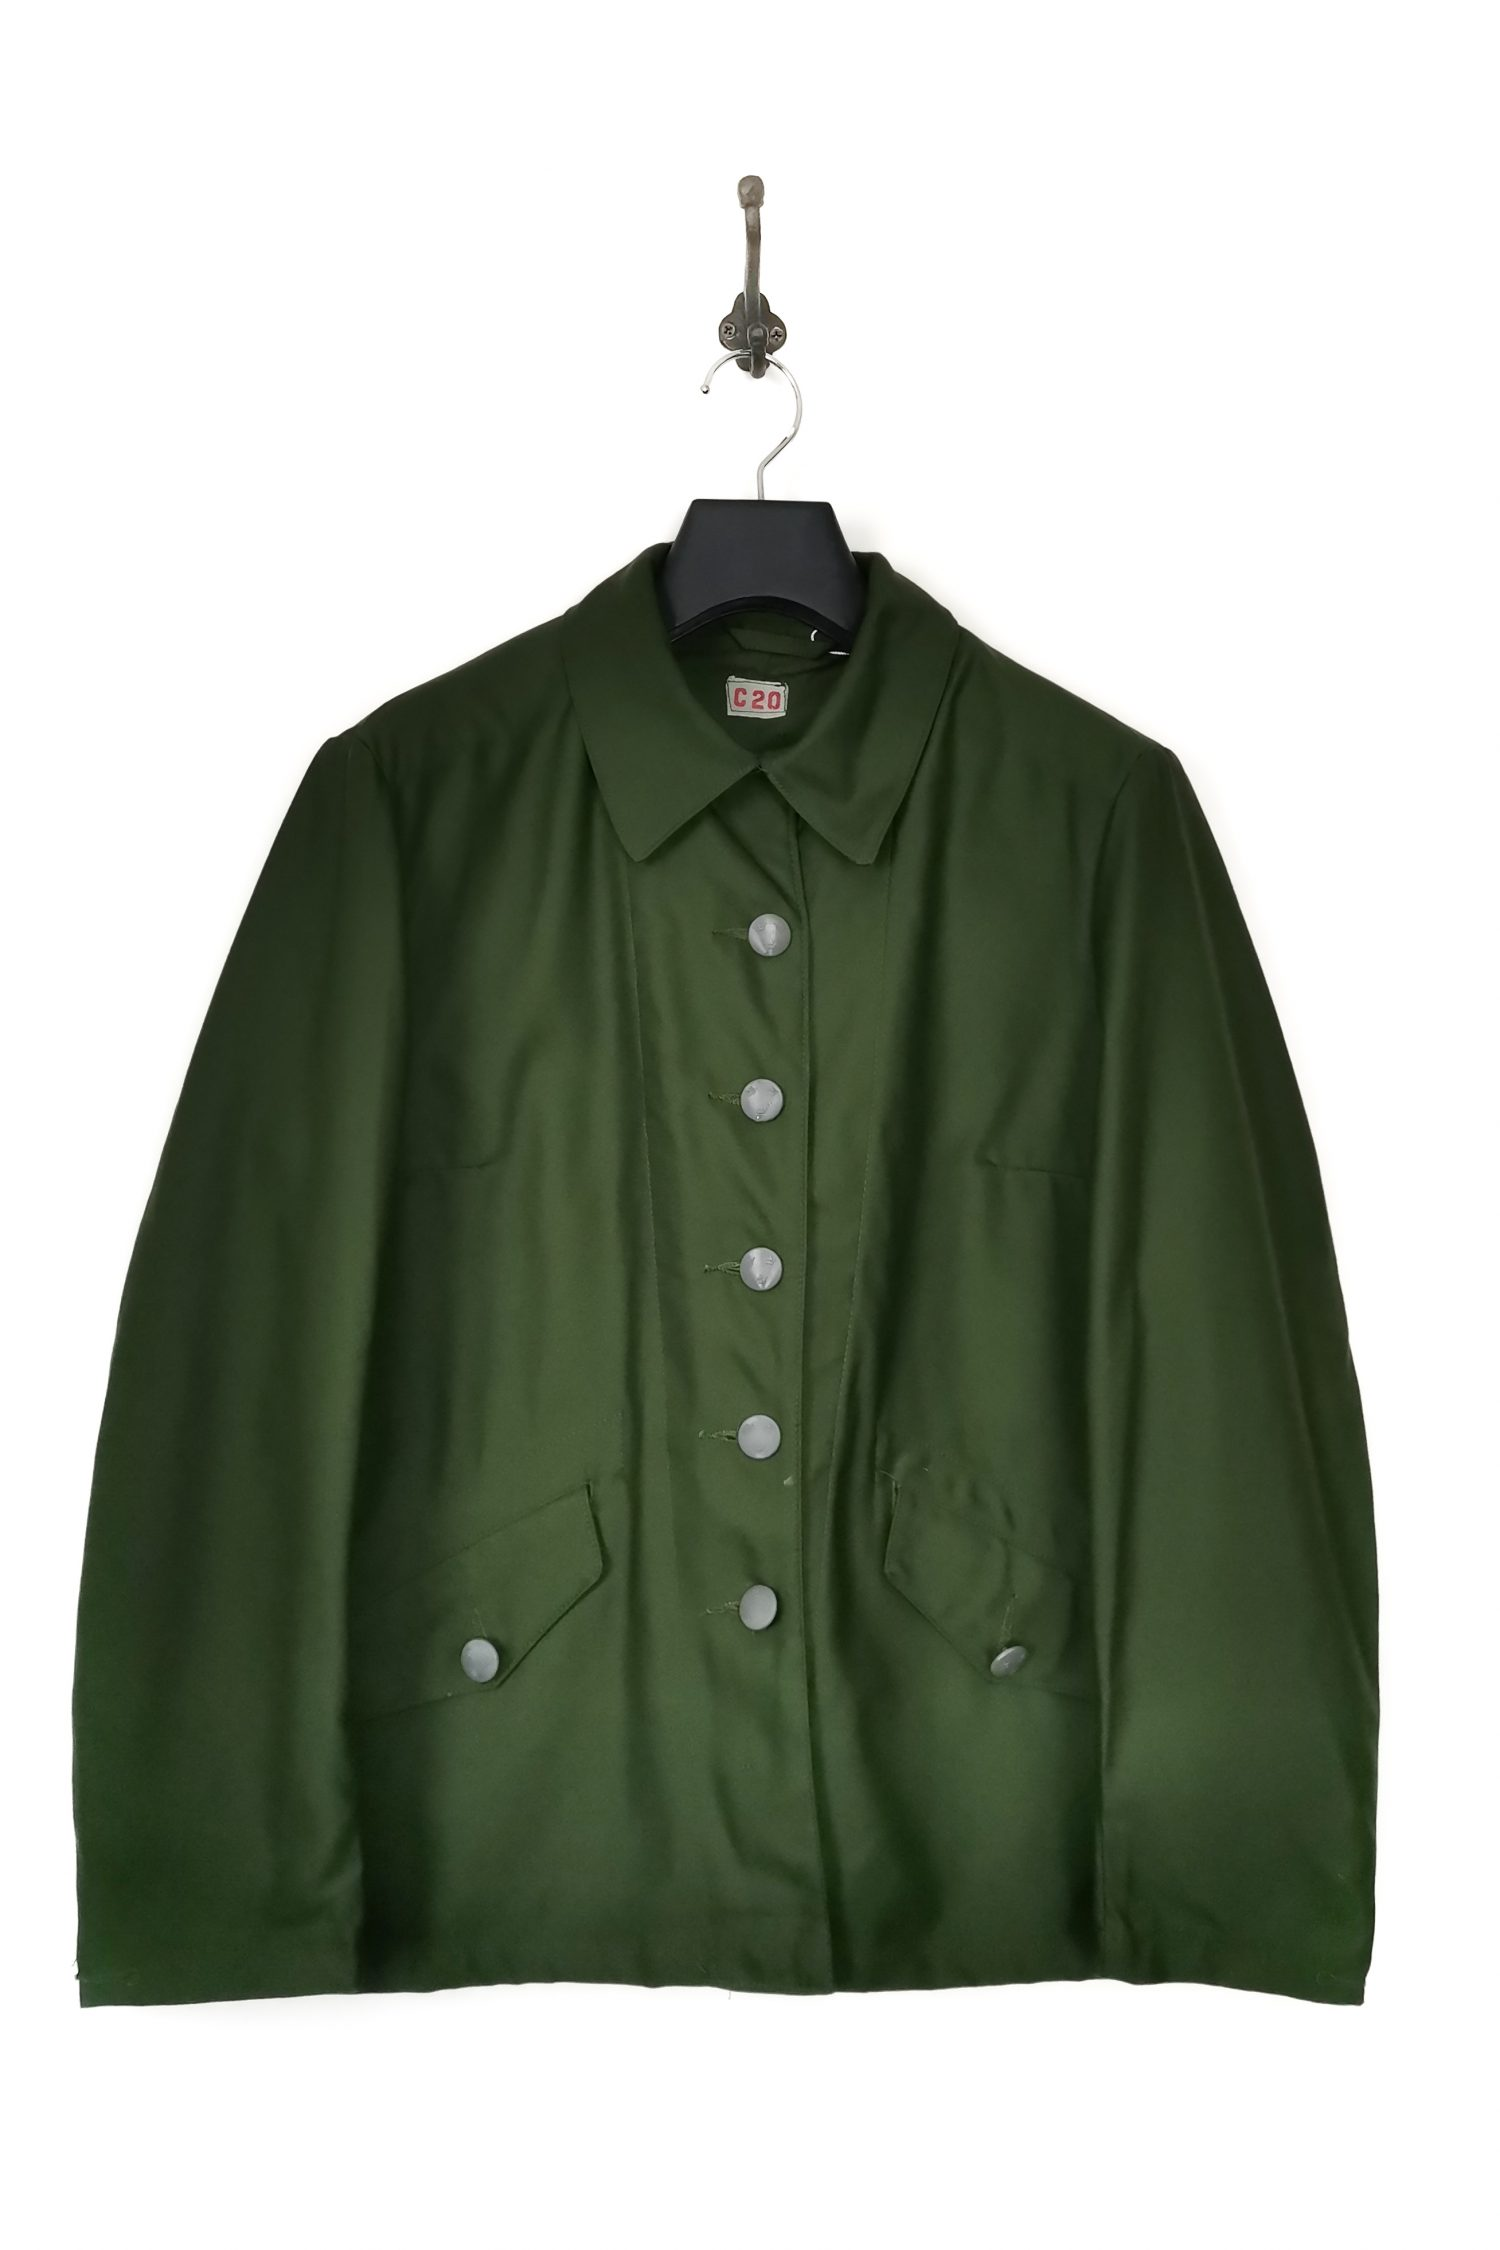 Swidish Military Work Jacket_Dead Stock_M-01